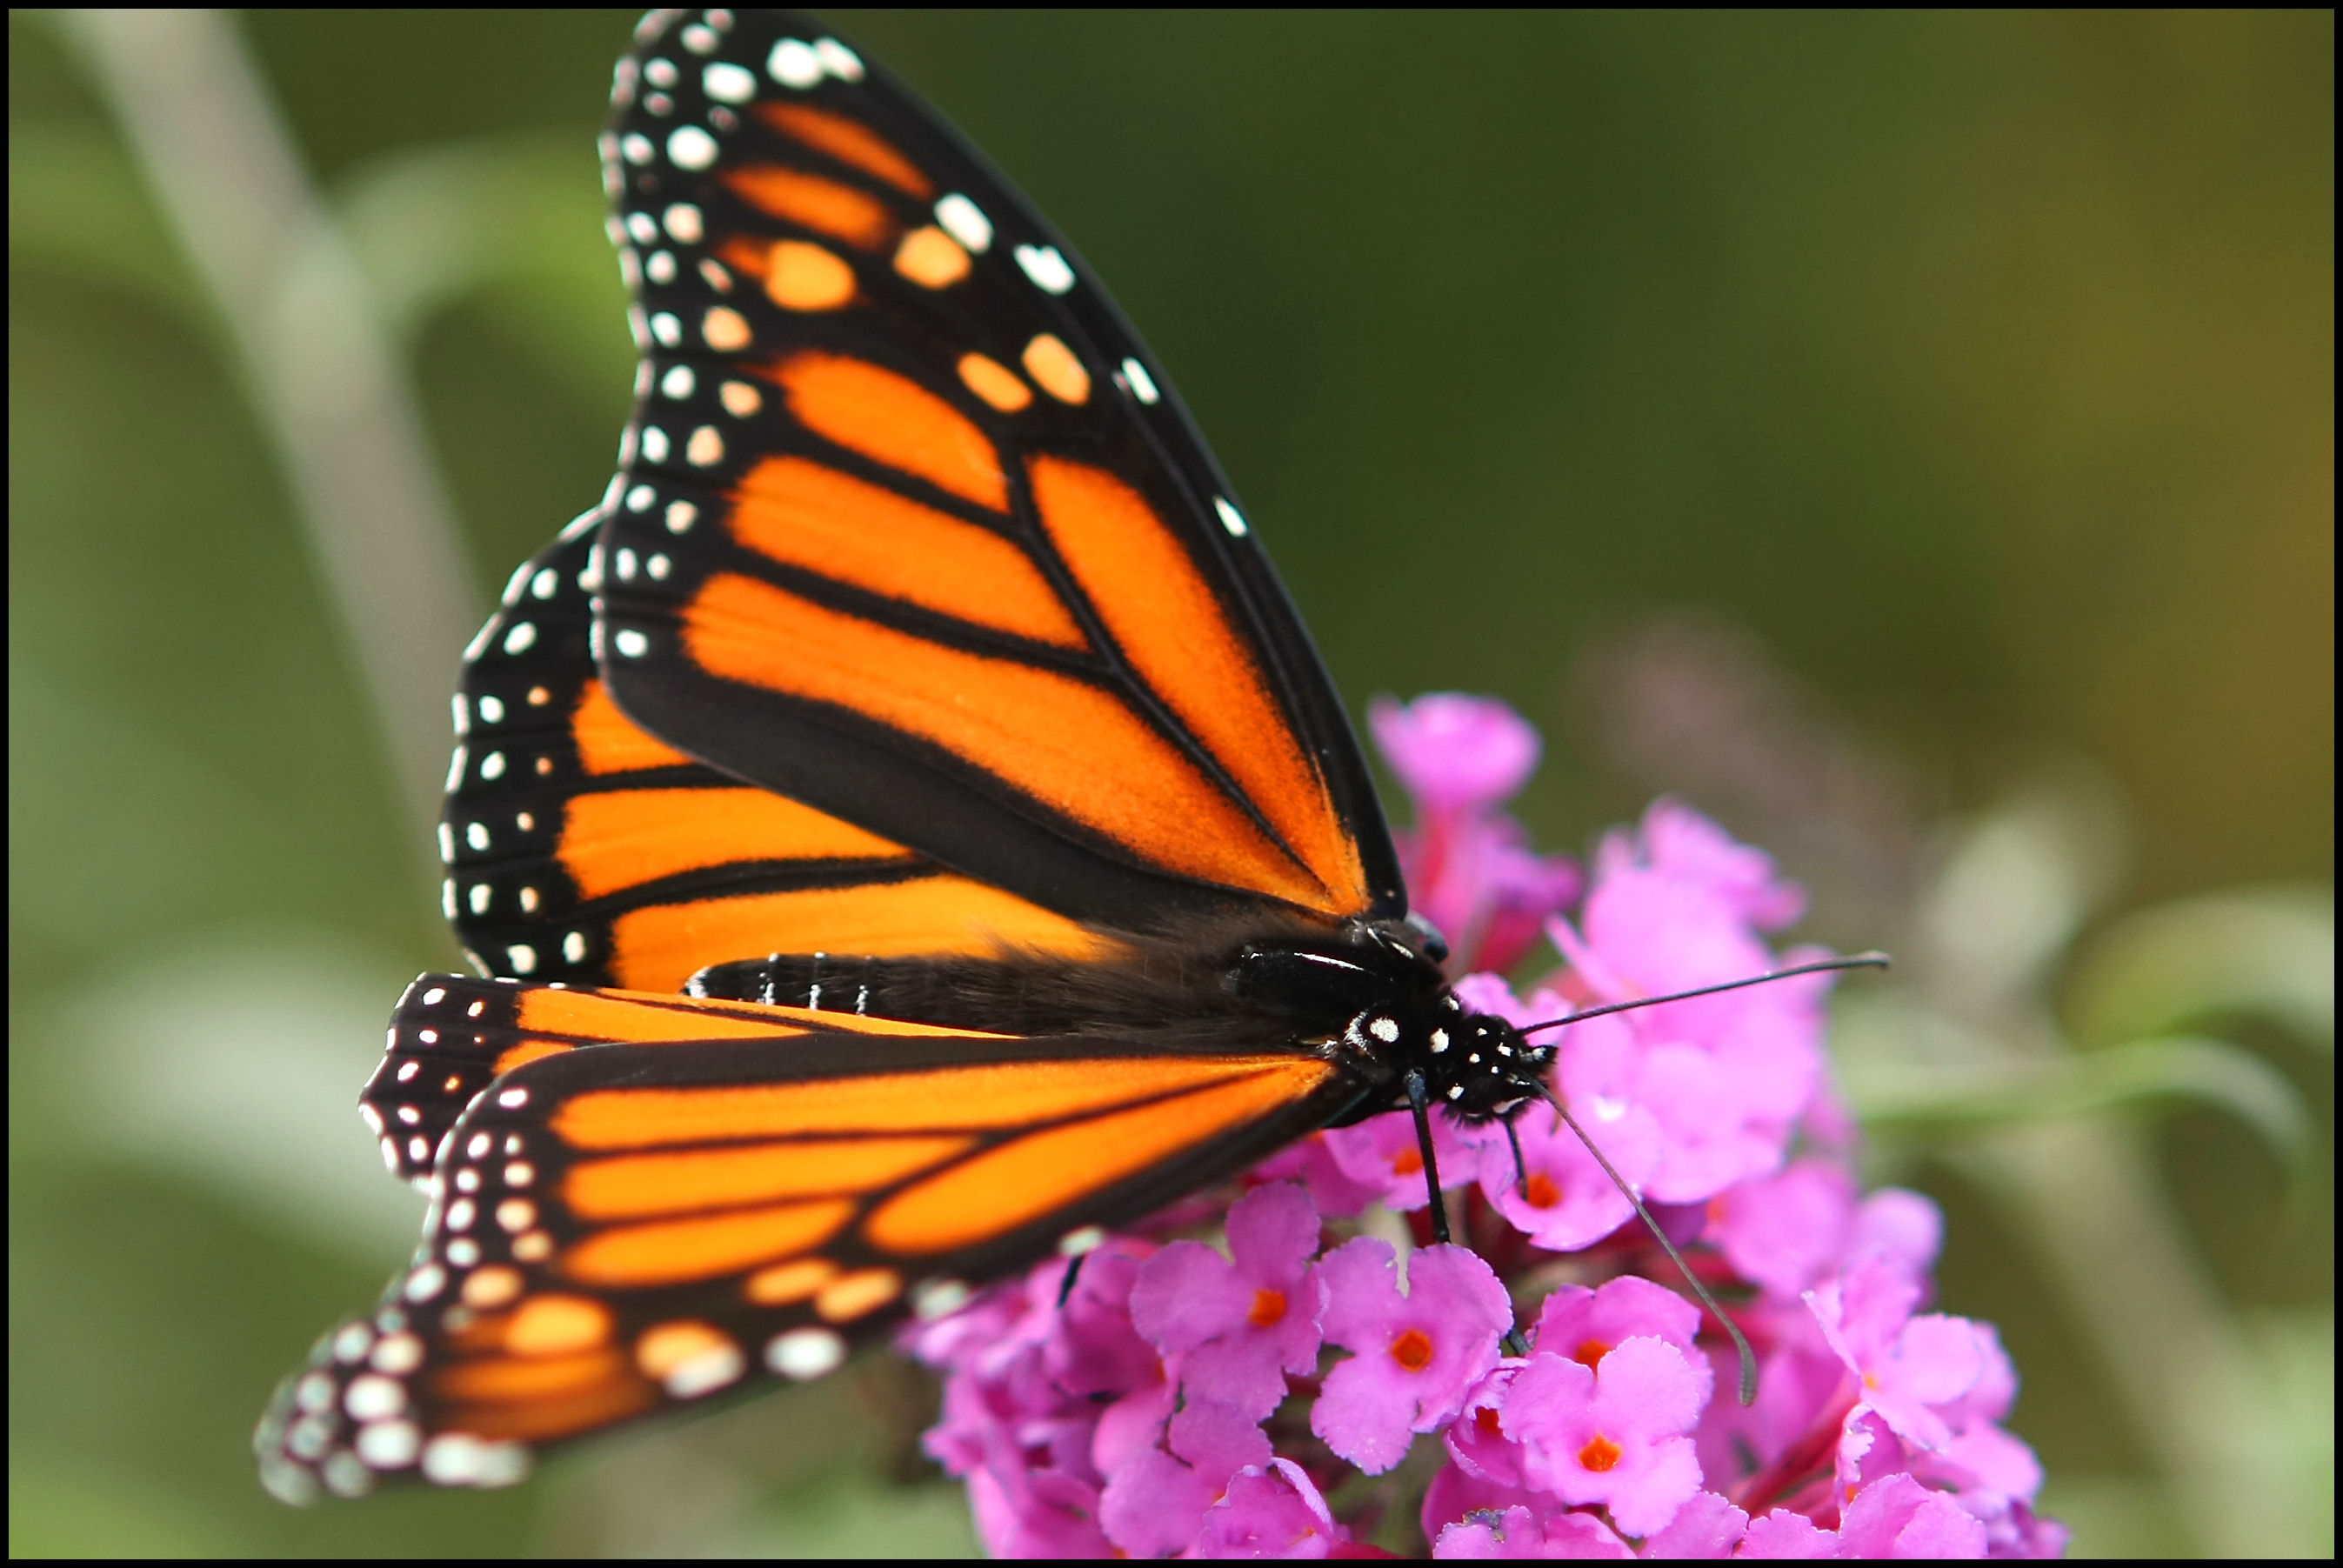 Monarch Butterfly Wallpaper Latest Images ubxx7ic6 Yoanu 2694x1803